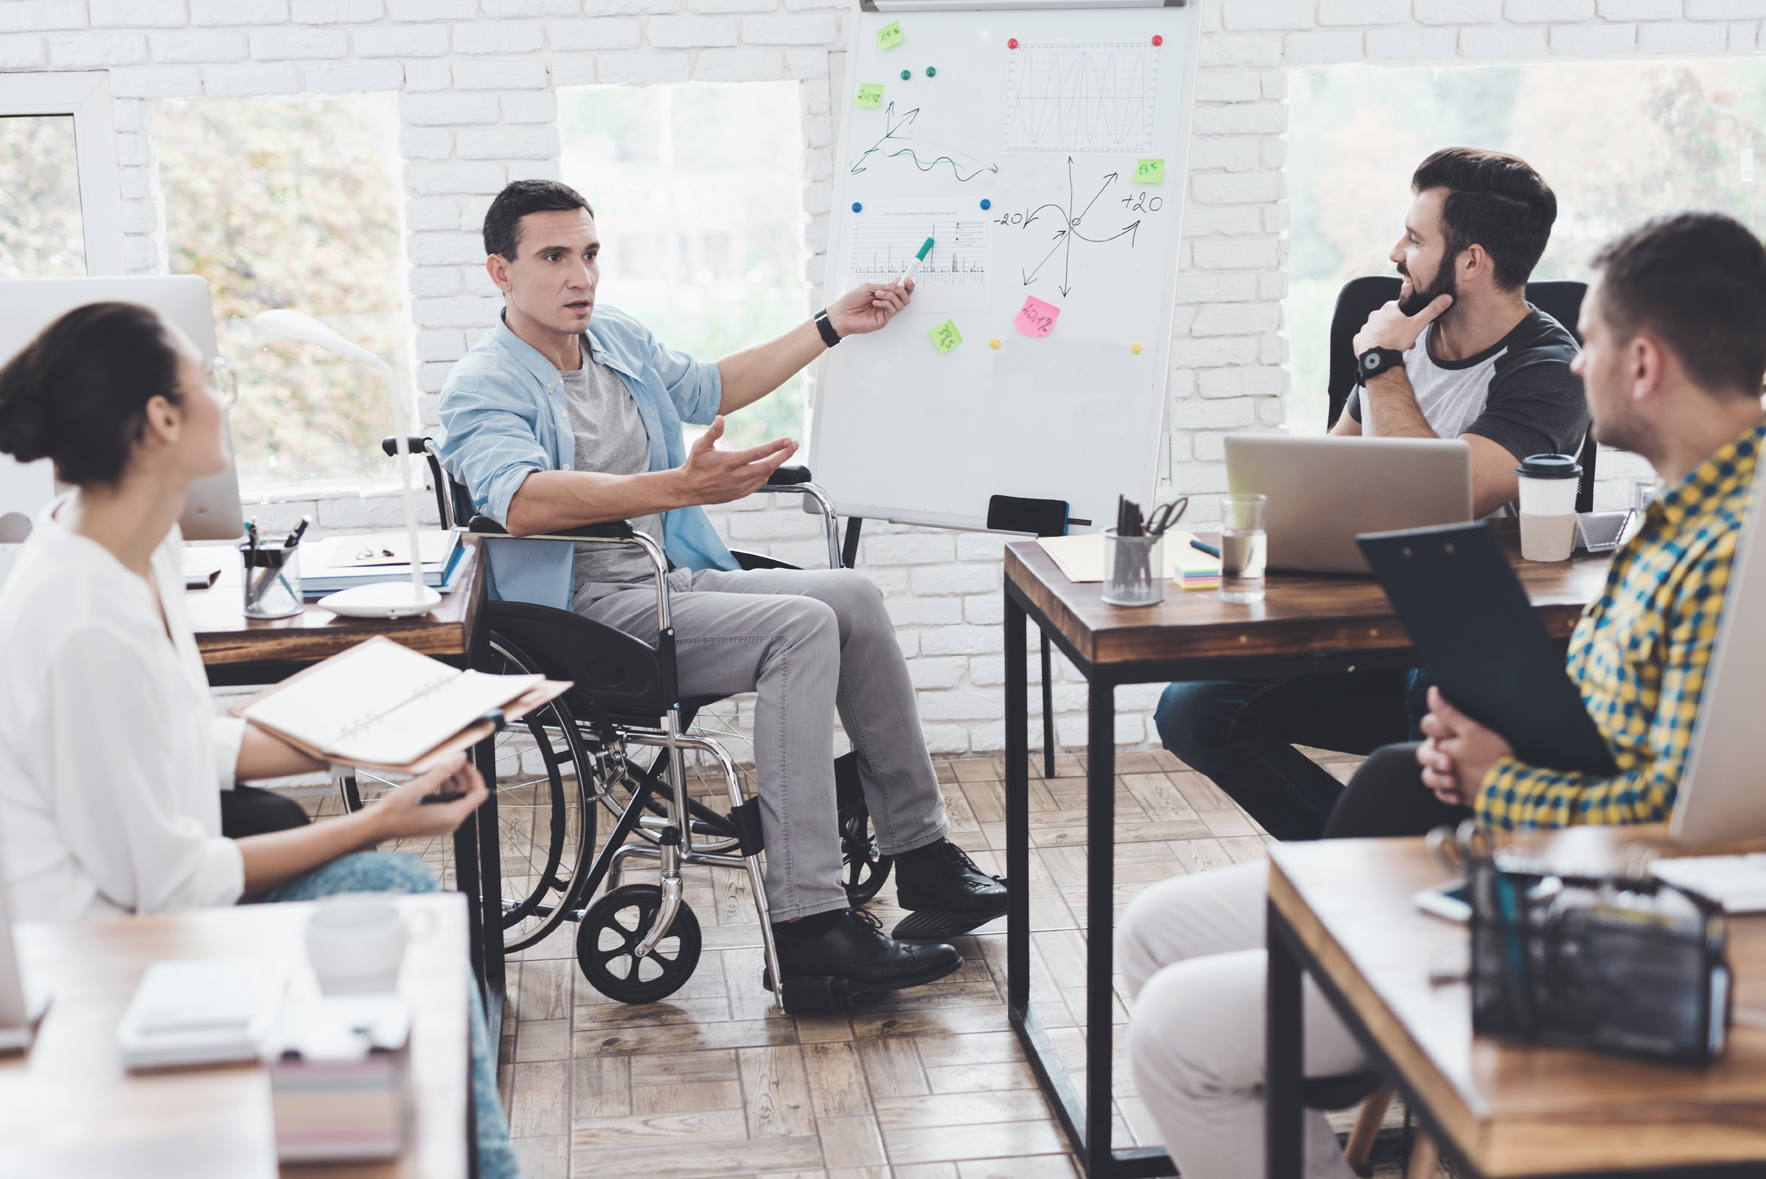 Man in a wheelchair pointing to a whiteboard and discussing graphic drawn on it with colleagues.